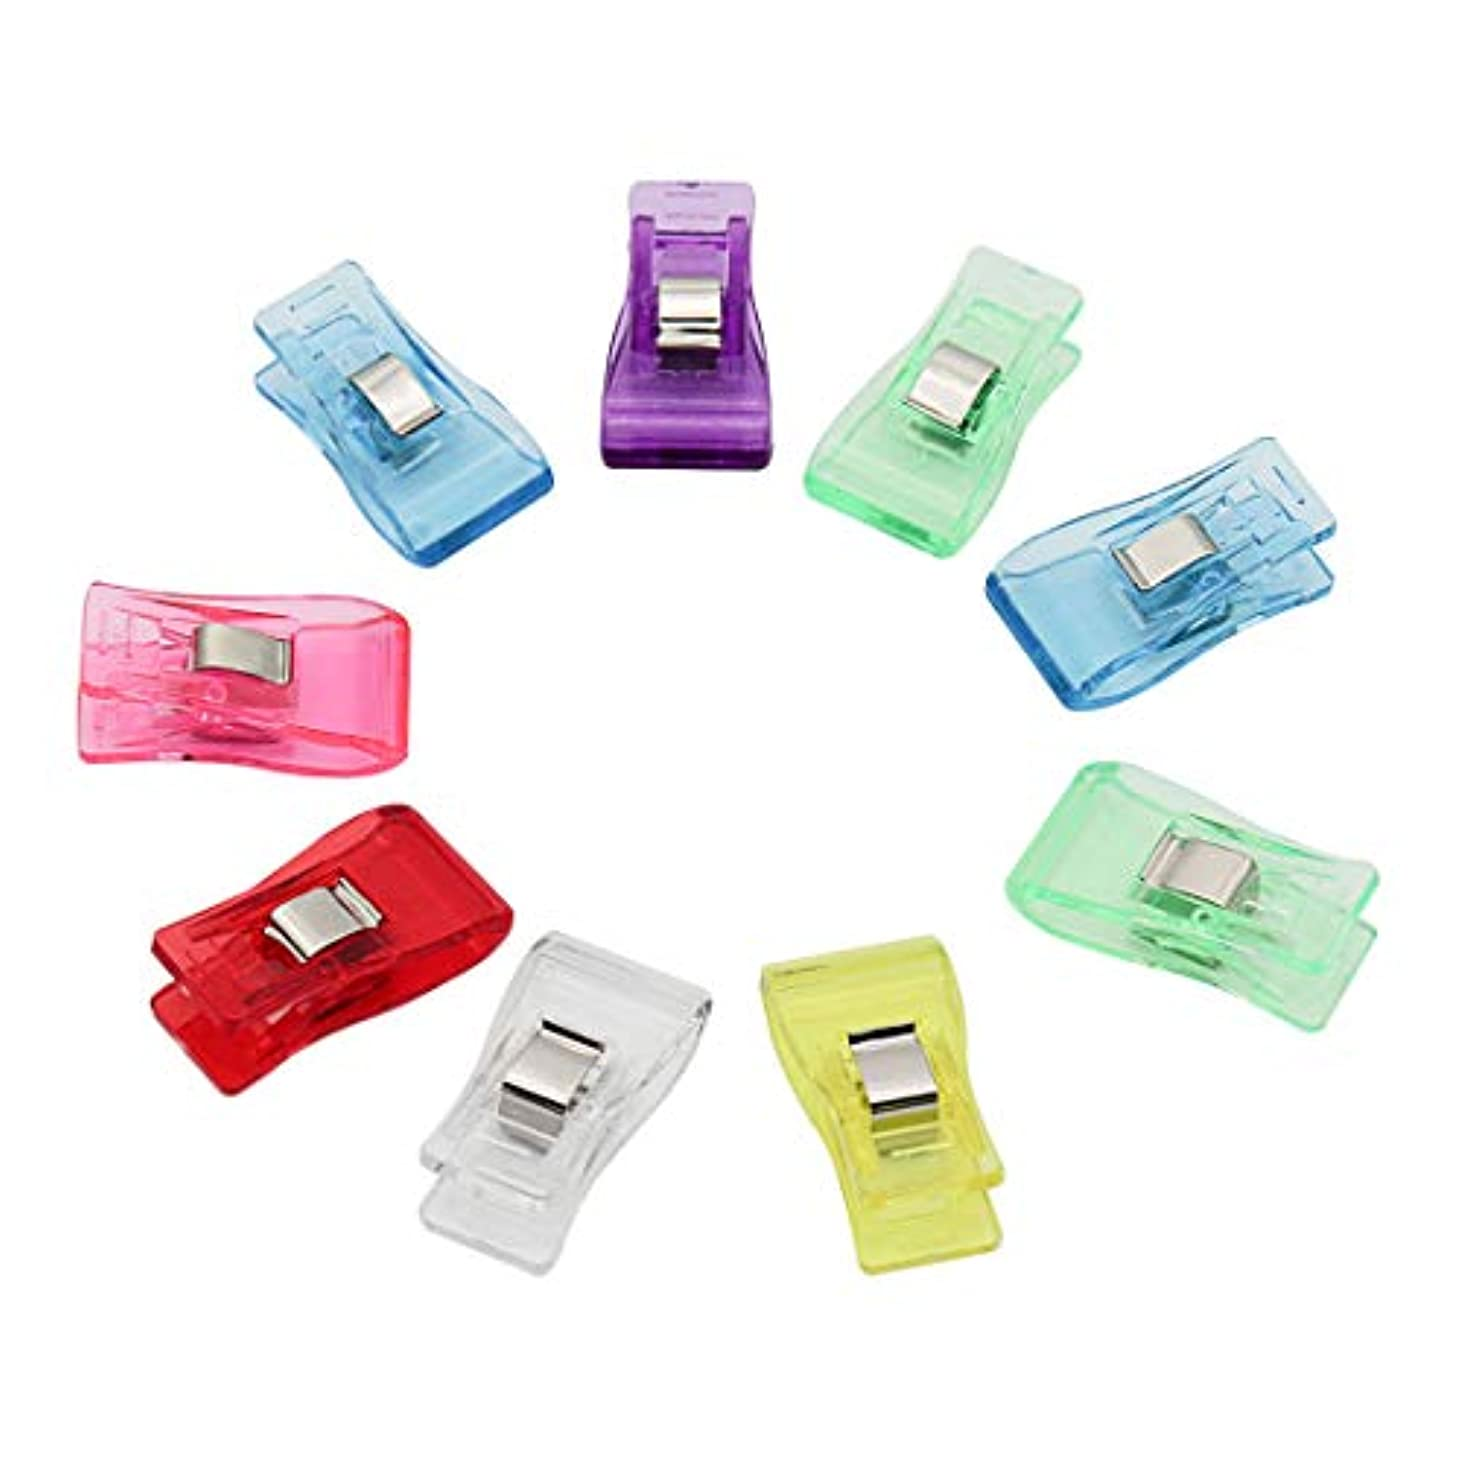 PVC Plastic Medium Clips for Patchwork Sewing DIY Crafts, Quilting Blinding Clip Retail 7 Colors Mixed,100PCS